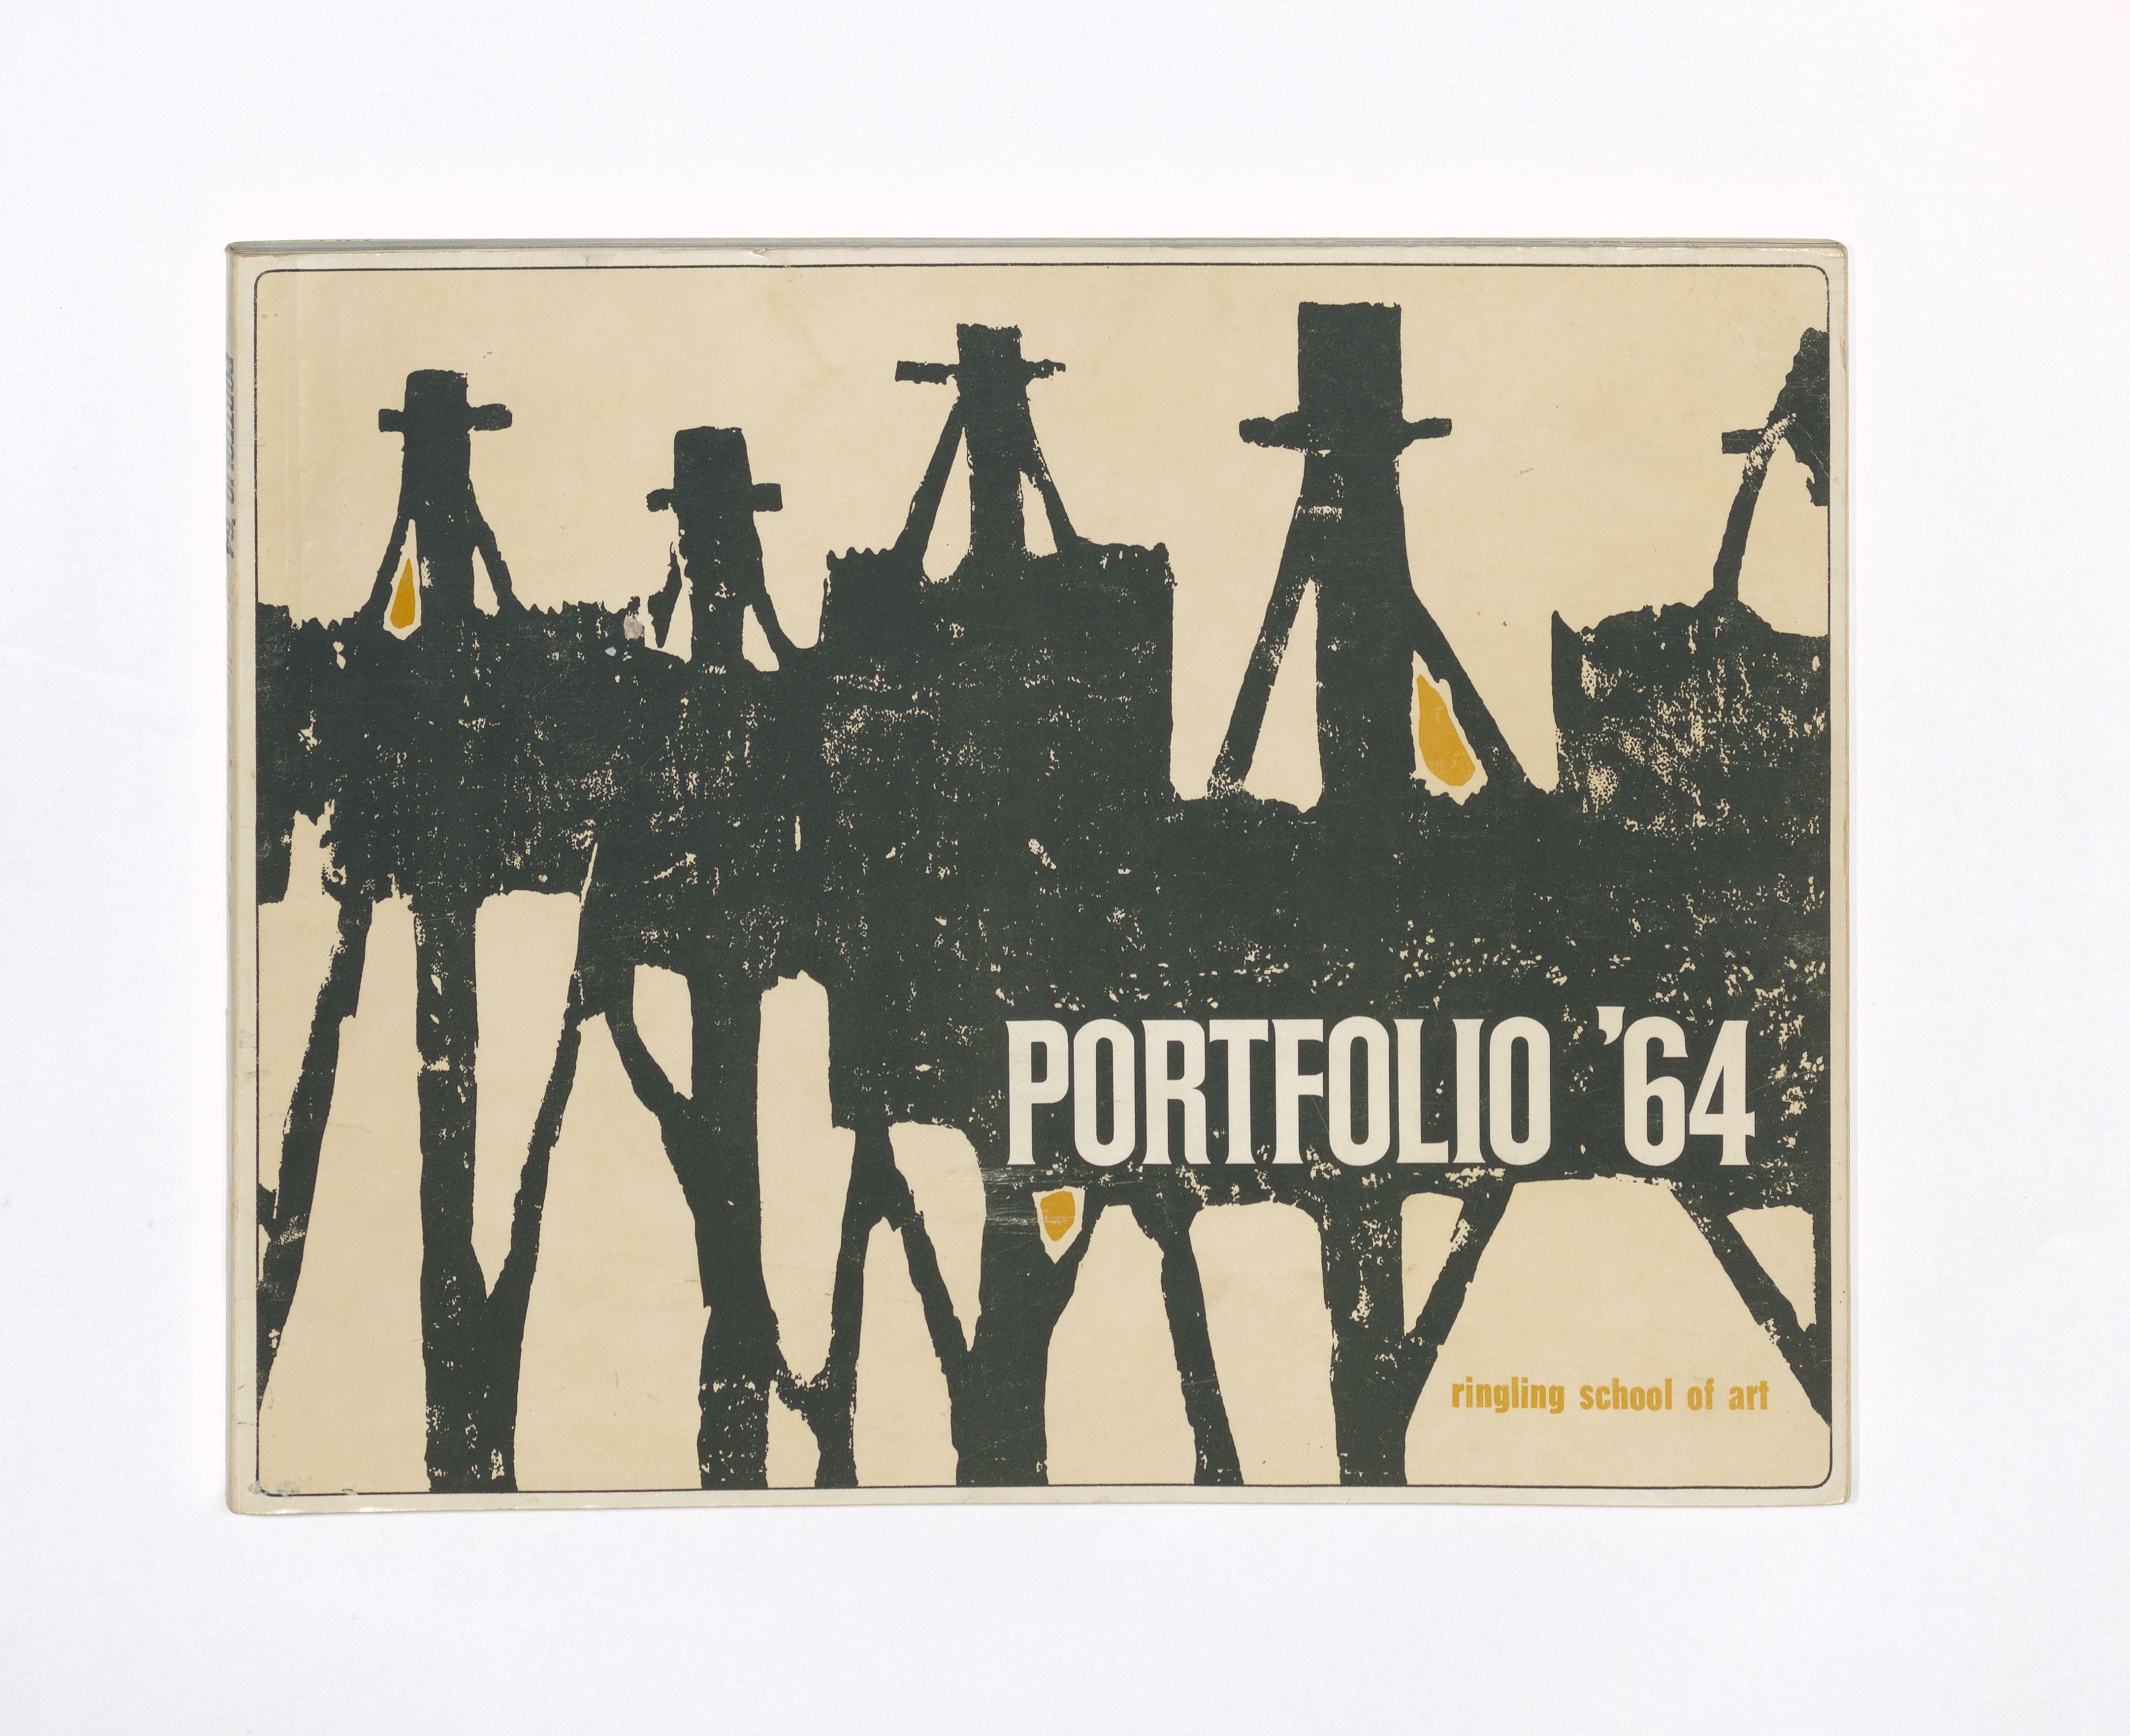 Cover image of Porfolio yearbook from 1964